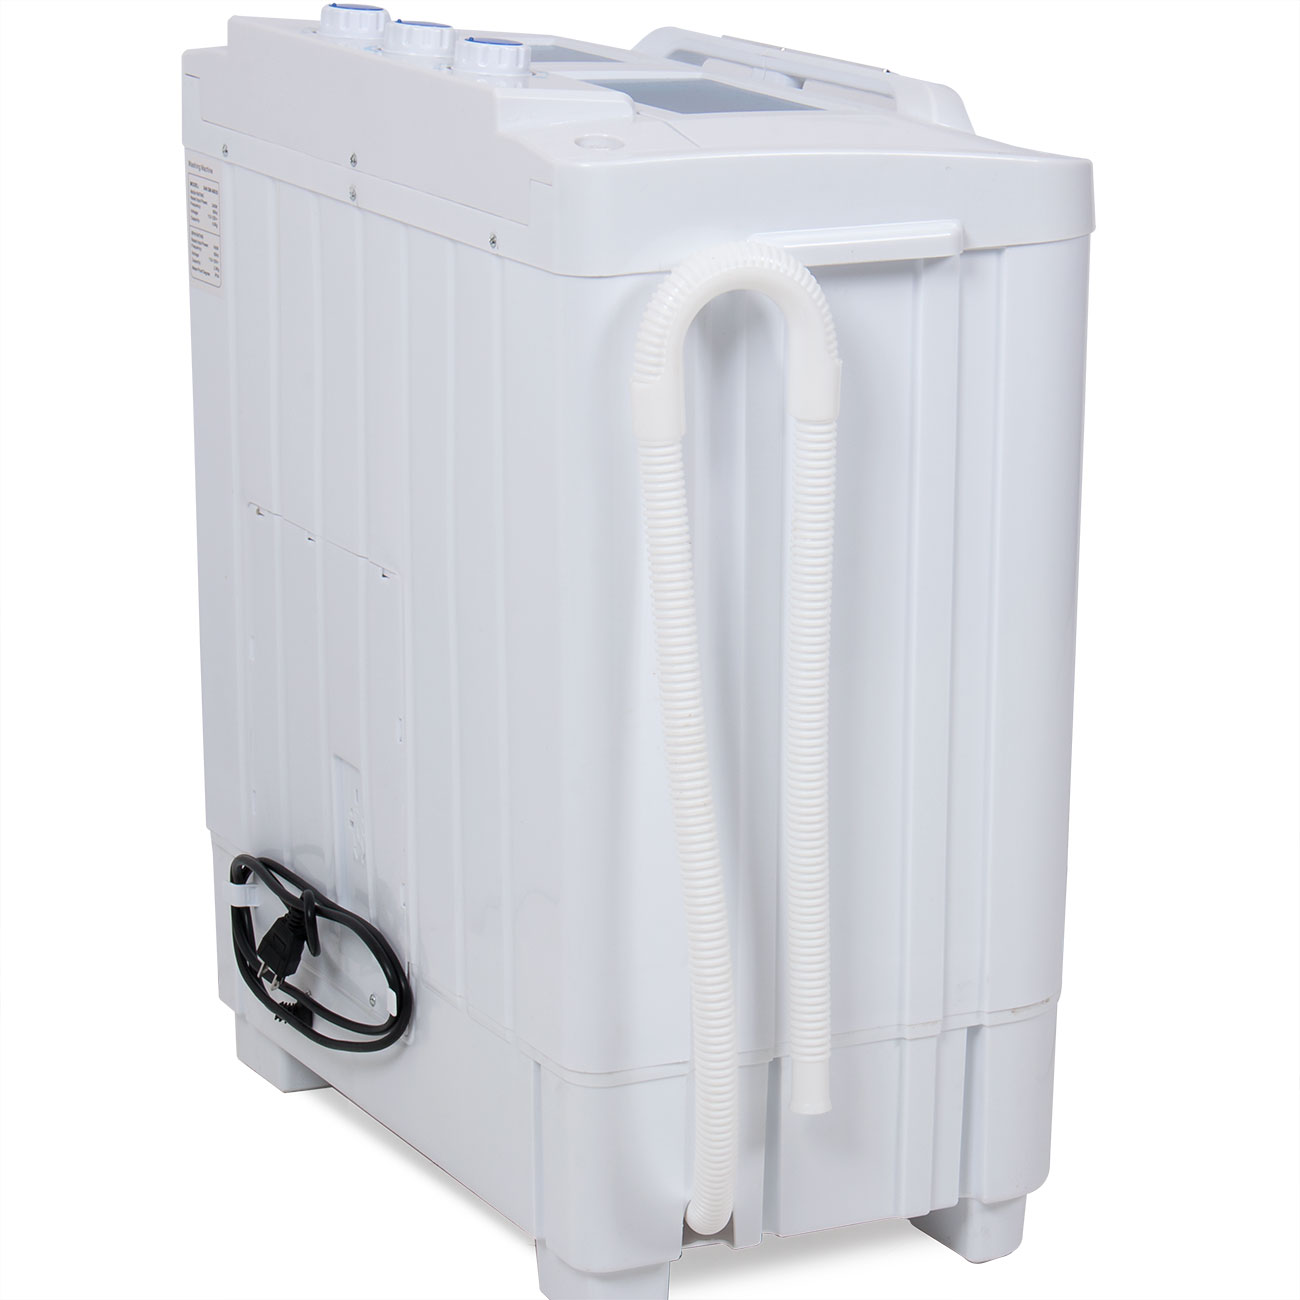 portable washing machine compact wash spin dry cycle laundry with built in pump ebay. Black Bedroom Furniture Sets. Home Design Ideas